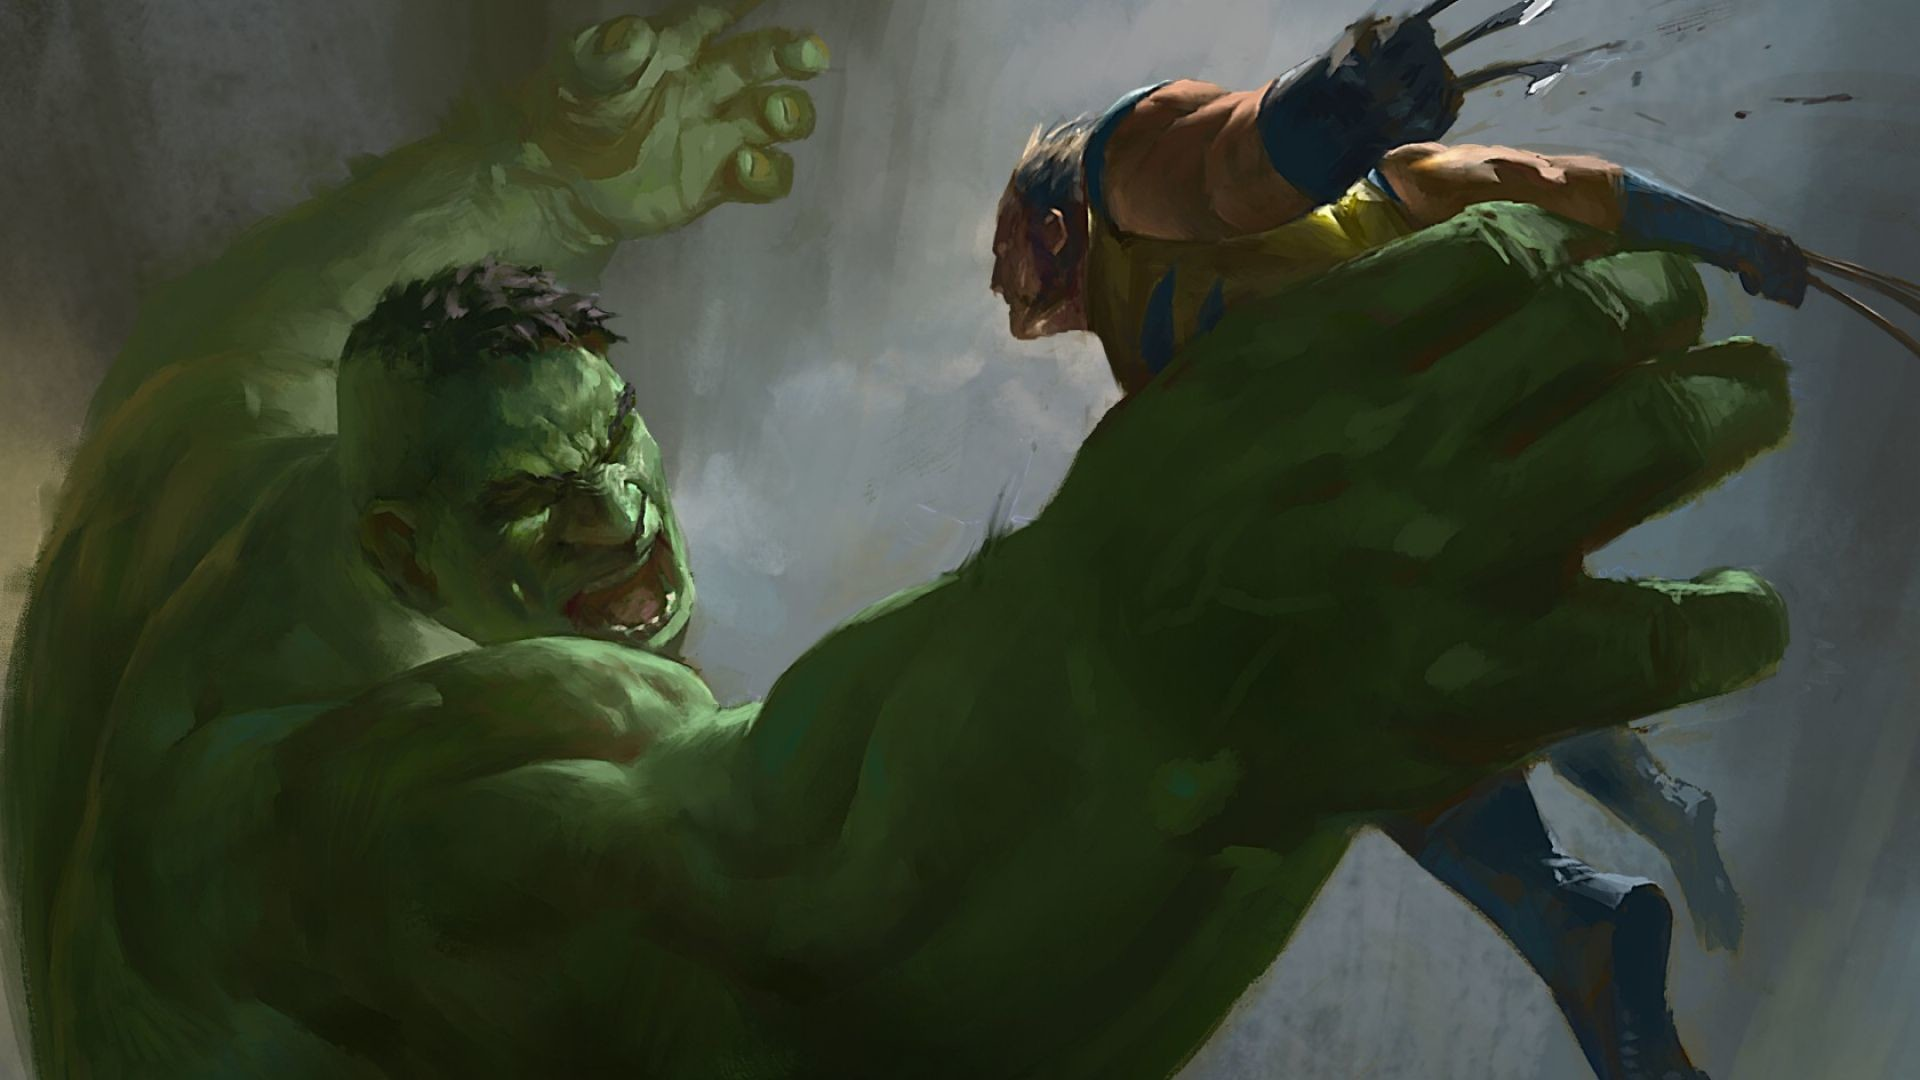 1920x1080 Download Wallpaper  Hulk, Wolverine, X-men, Marvel comics .